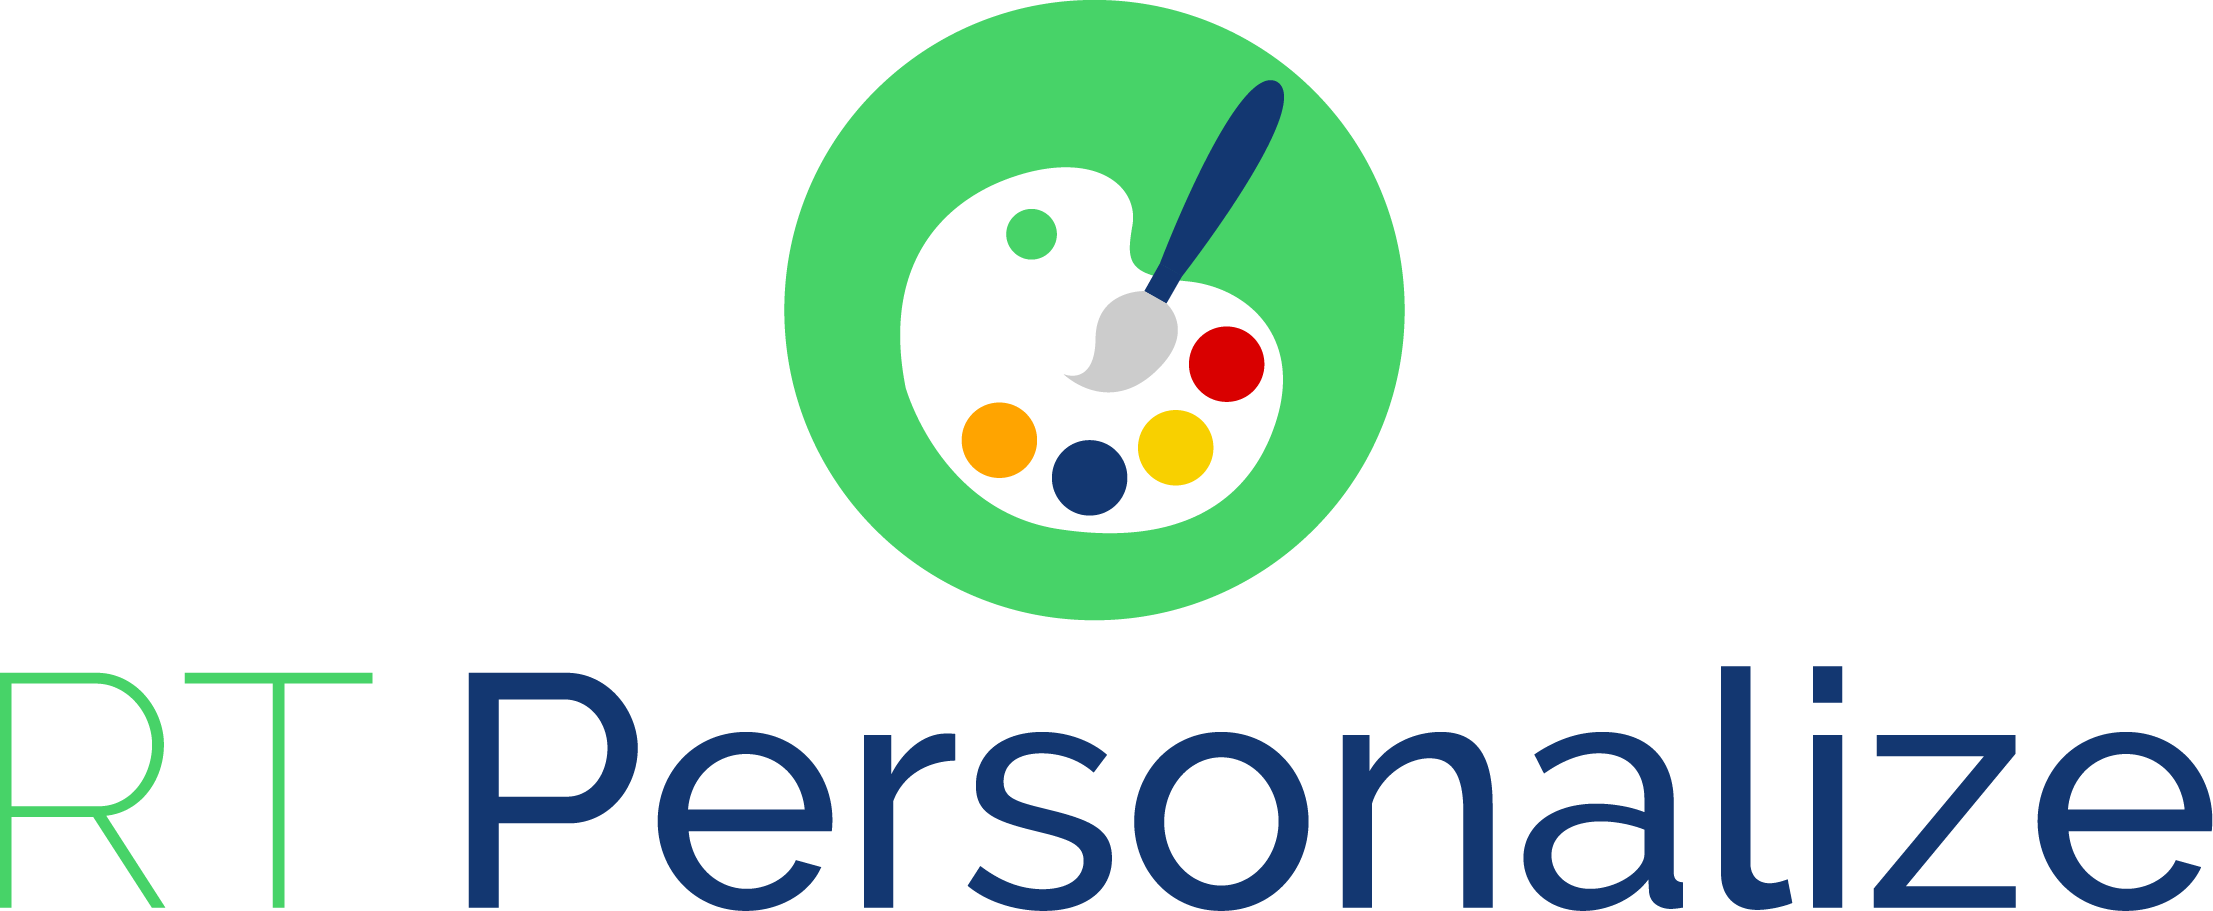 RT Personalize Logo